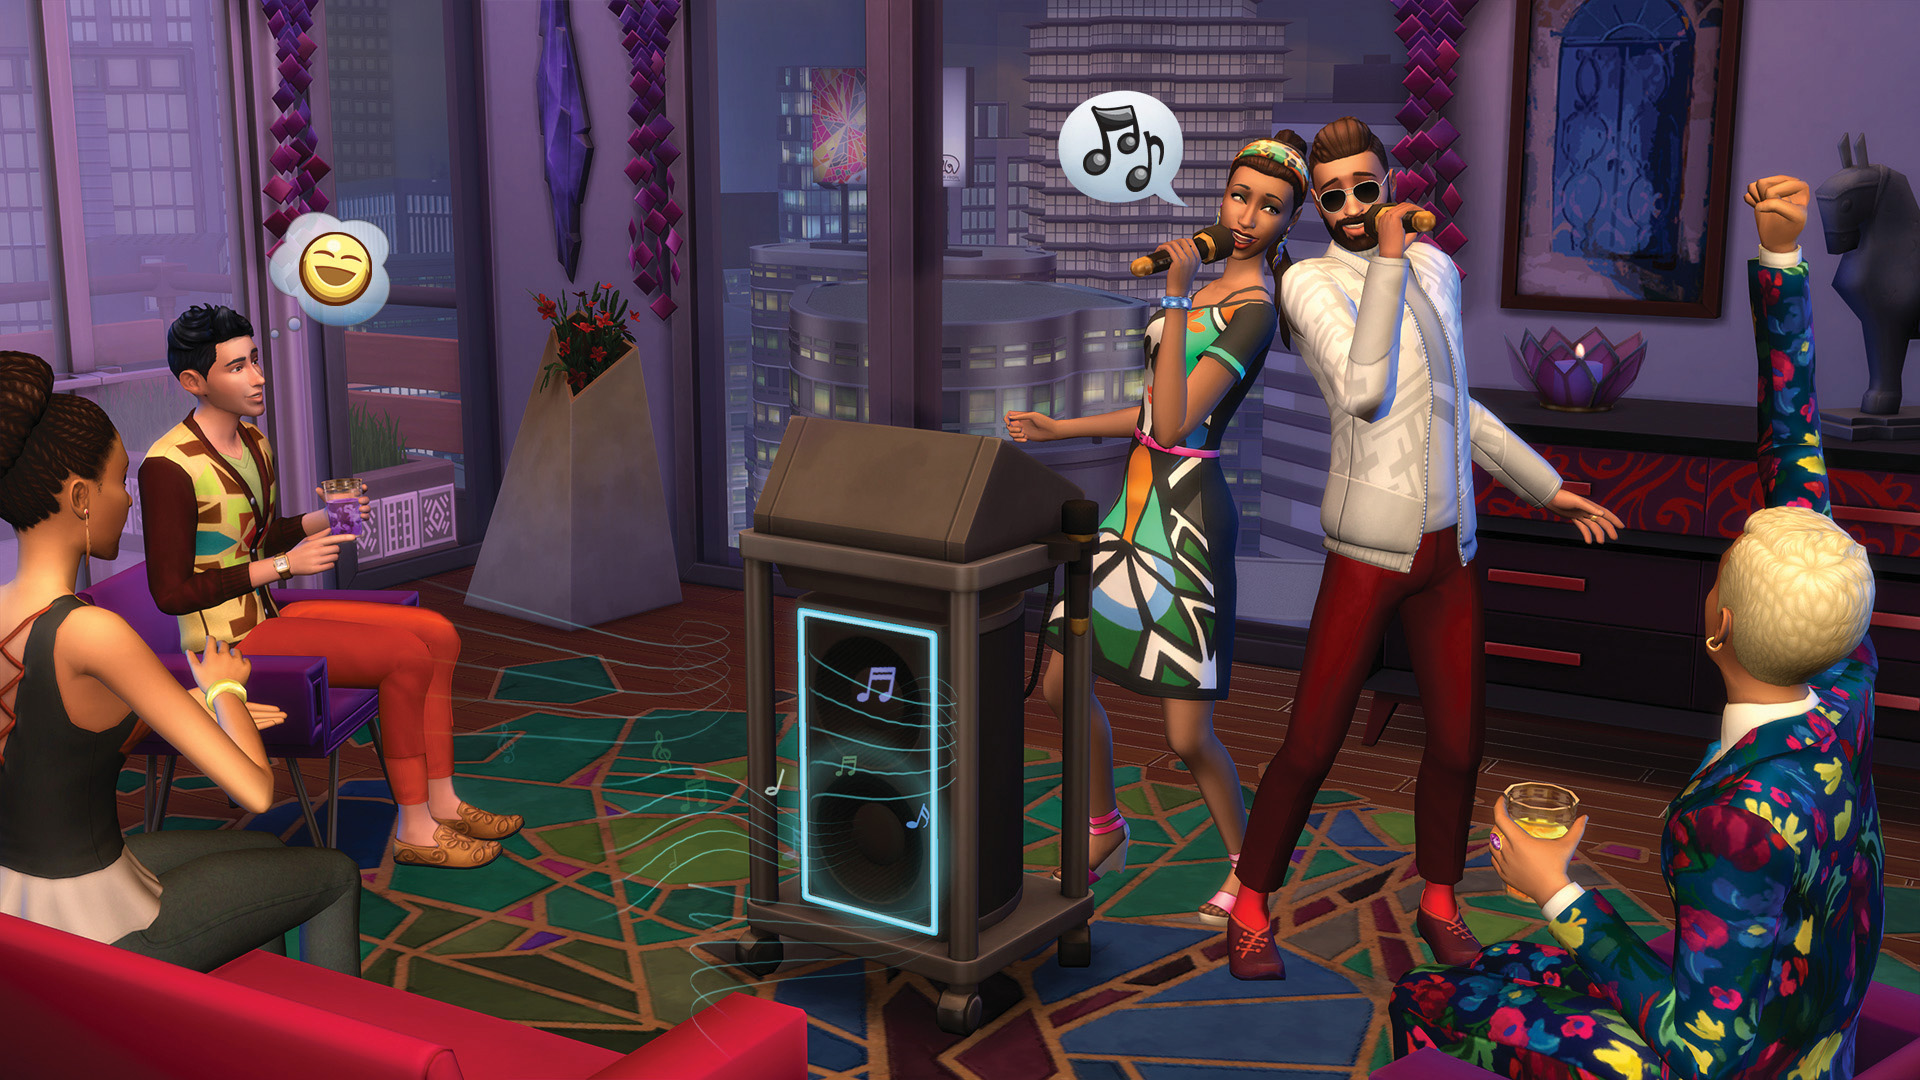 How to speak like the Sims | PC Gamer